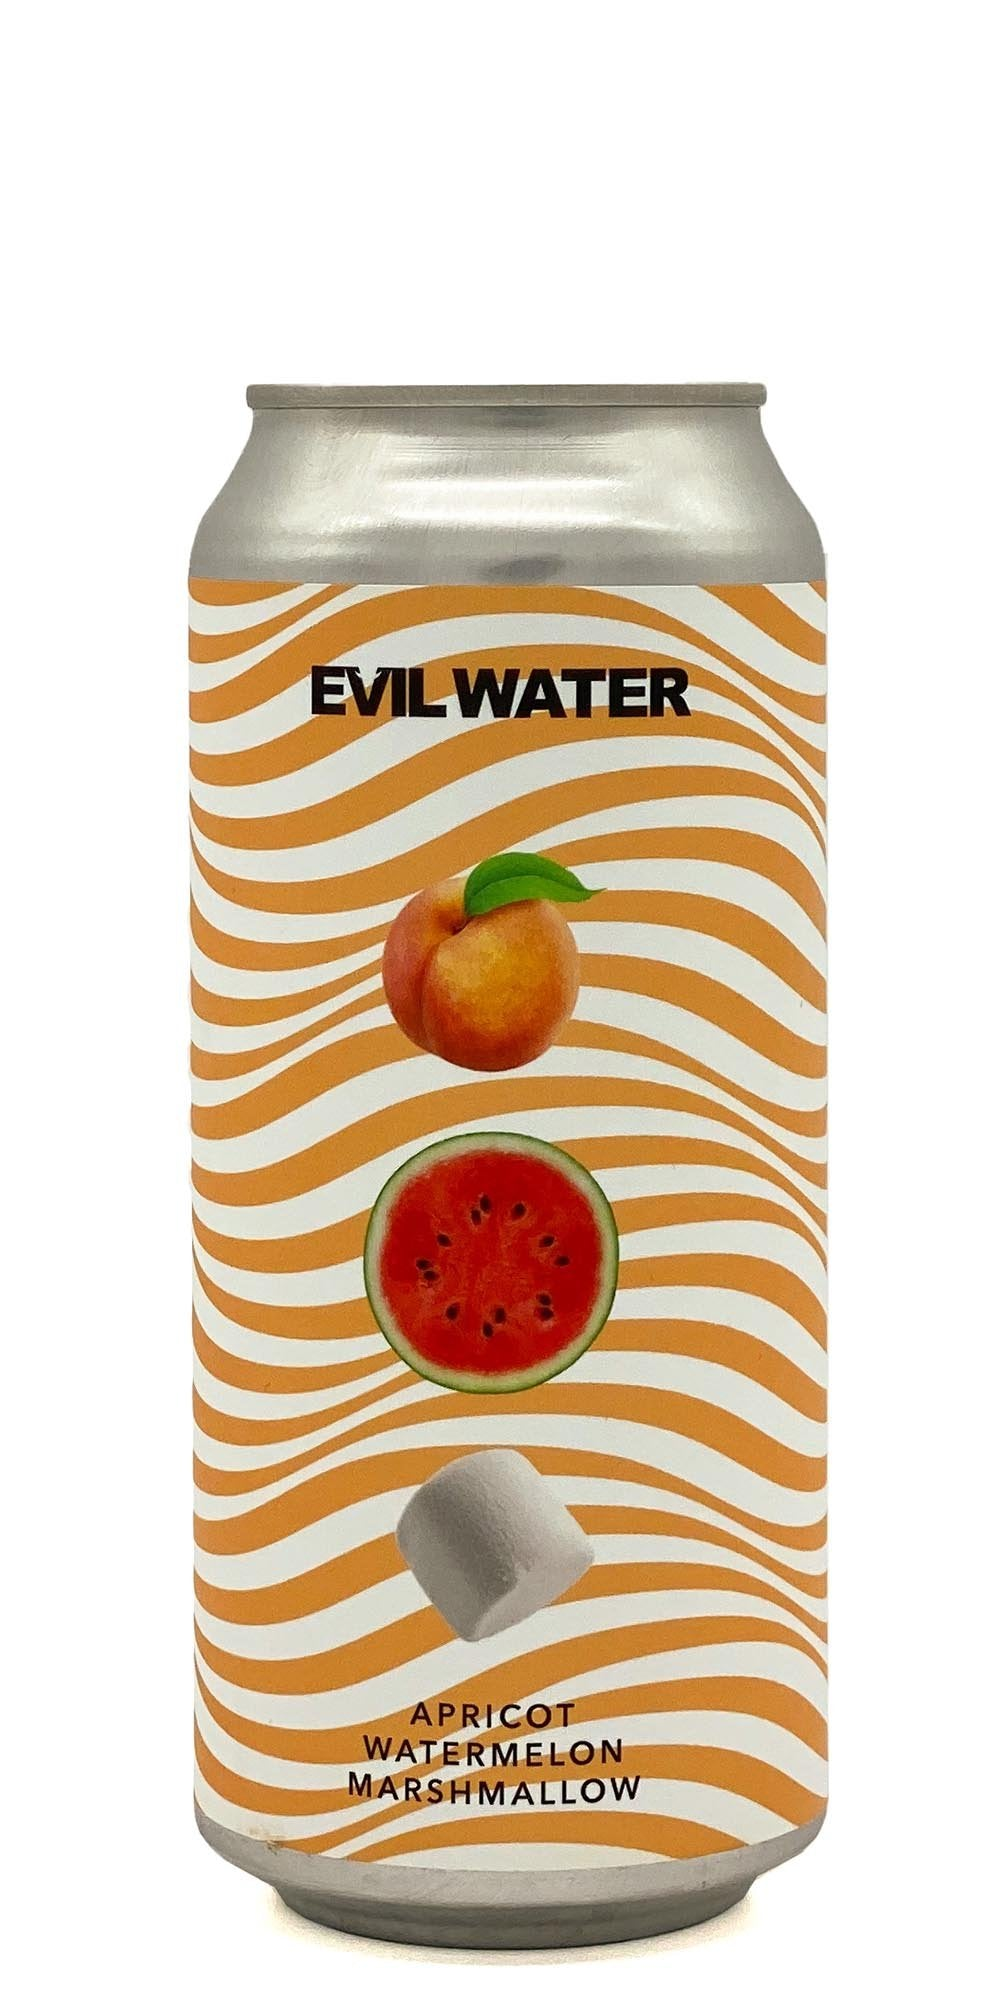 Evil Water Apricot Watermelon Marshmallow - Drikbeer - Order Craft Beer Online